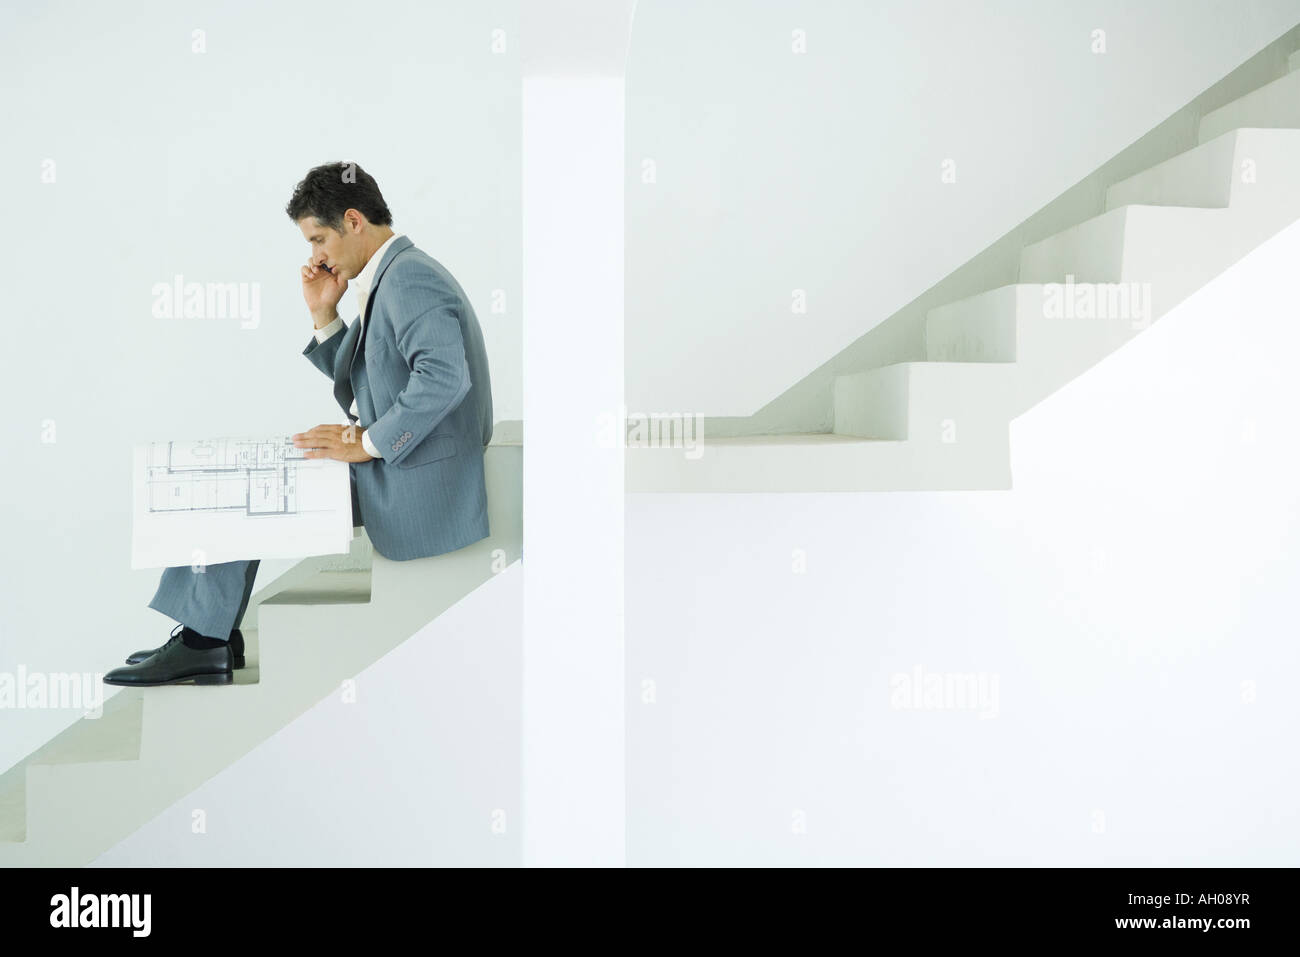 Man In Suit Sitting On Stairs Looking At Blueprints Using Cell